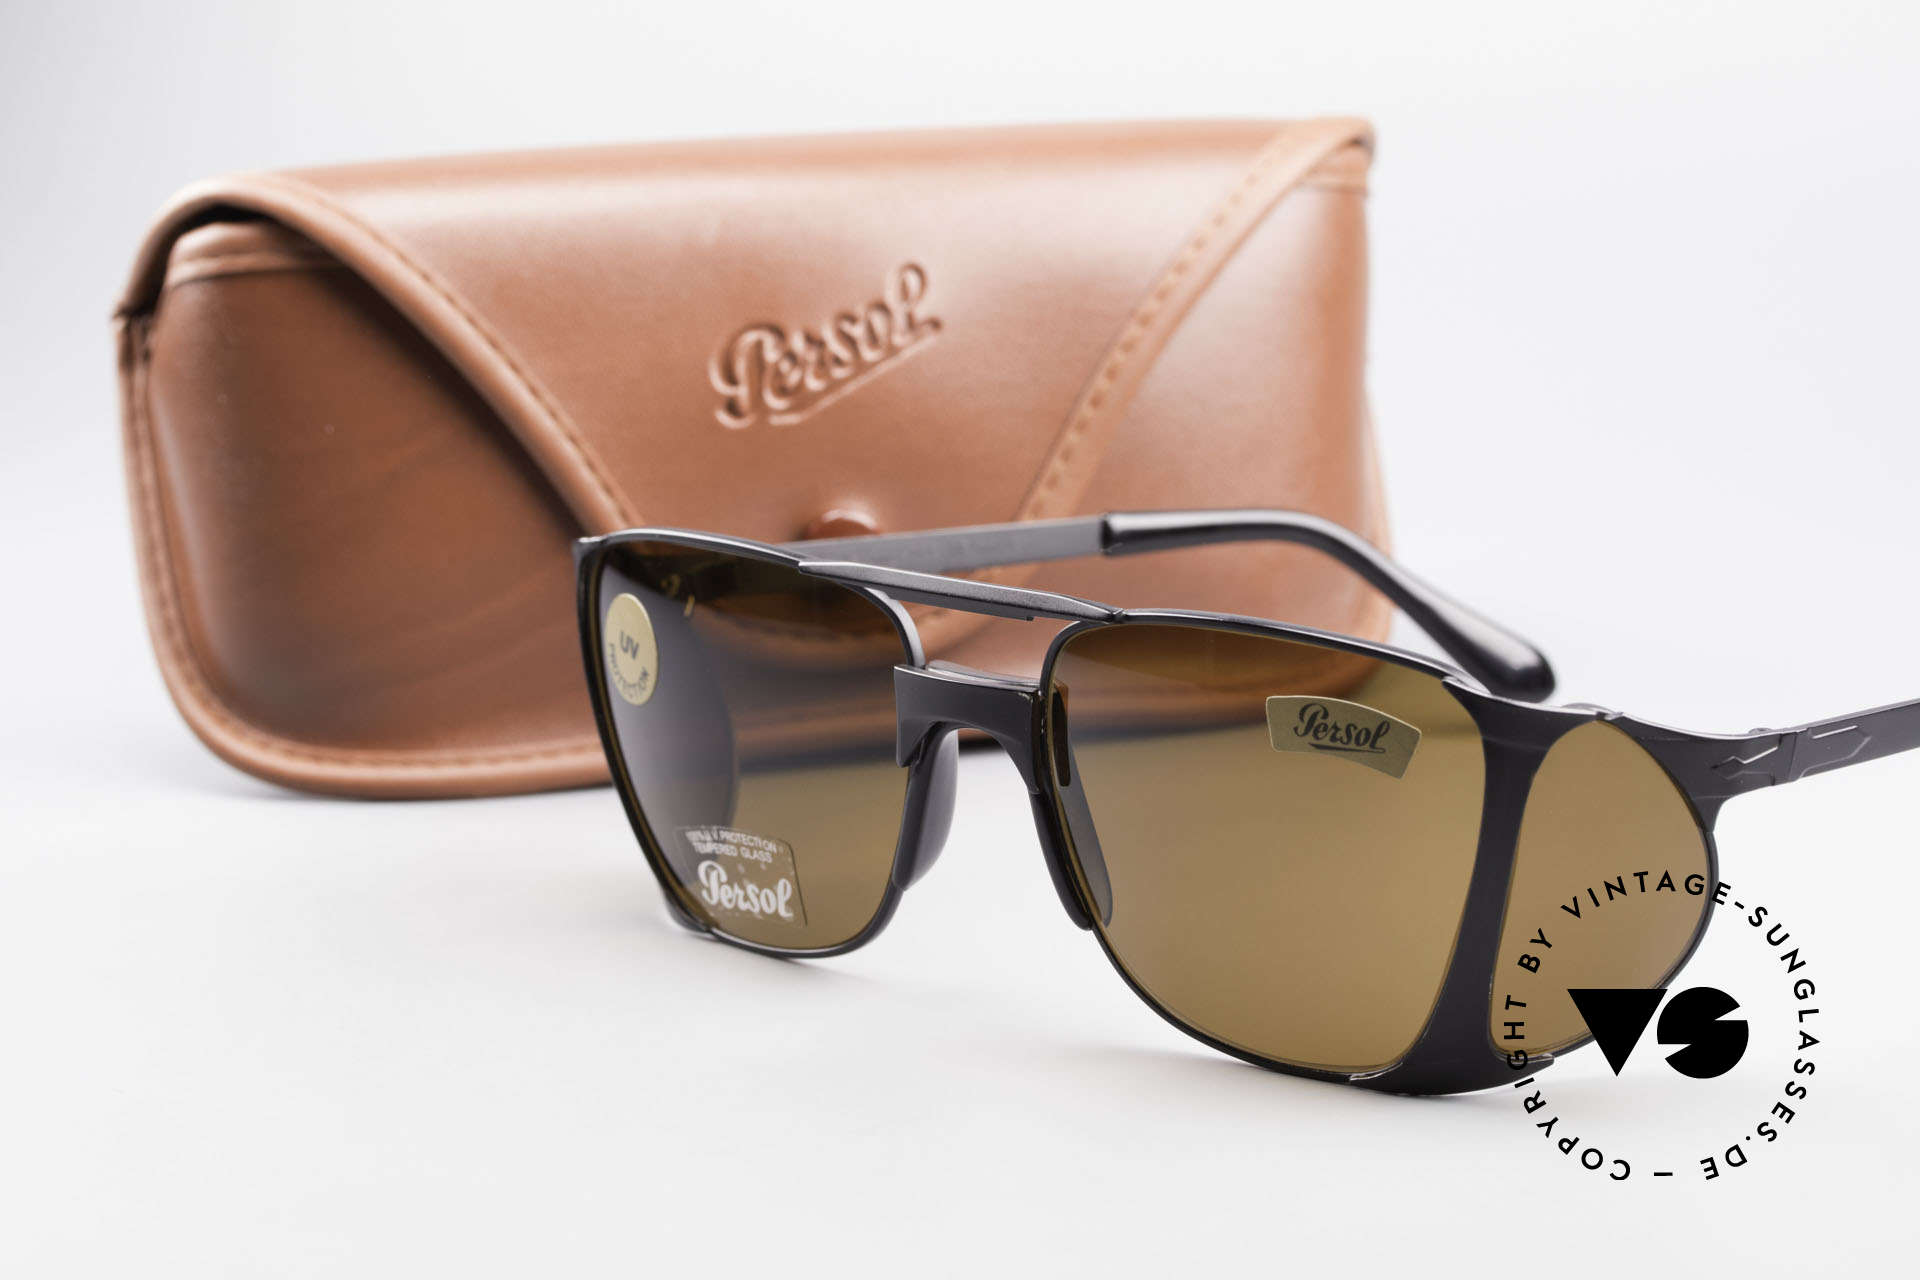 Persol 009 Ratti VIP Vintage 4lenses Nasa Shades, Size: extra large, Made for Men